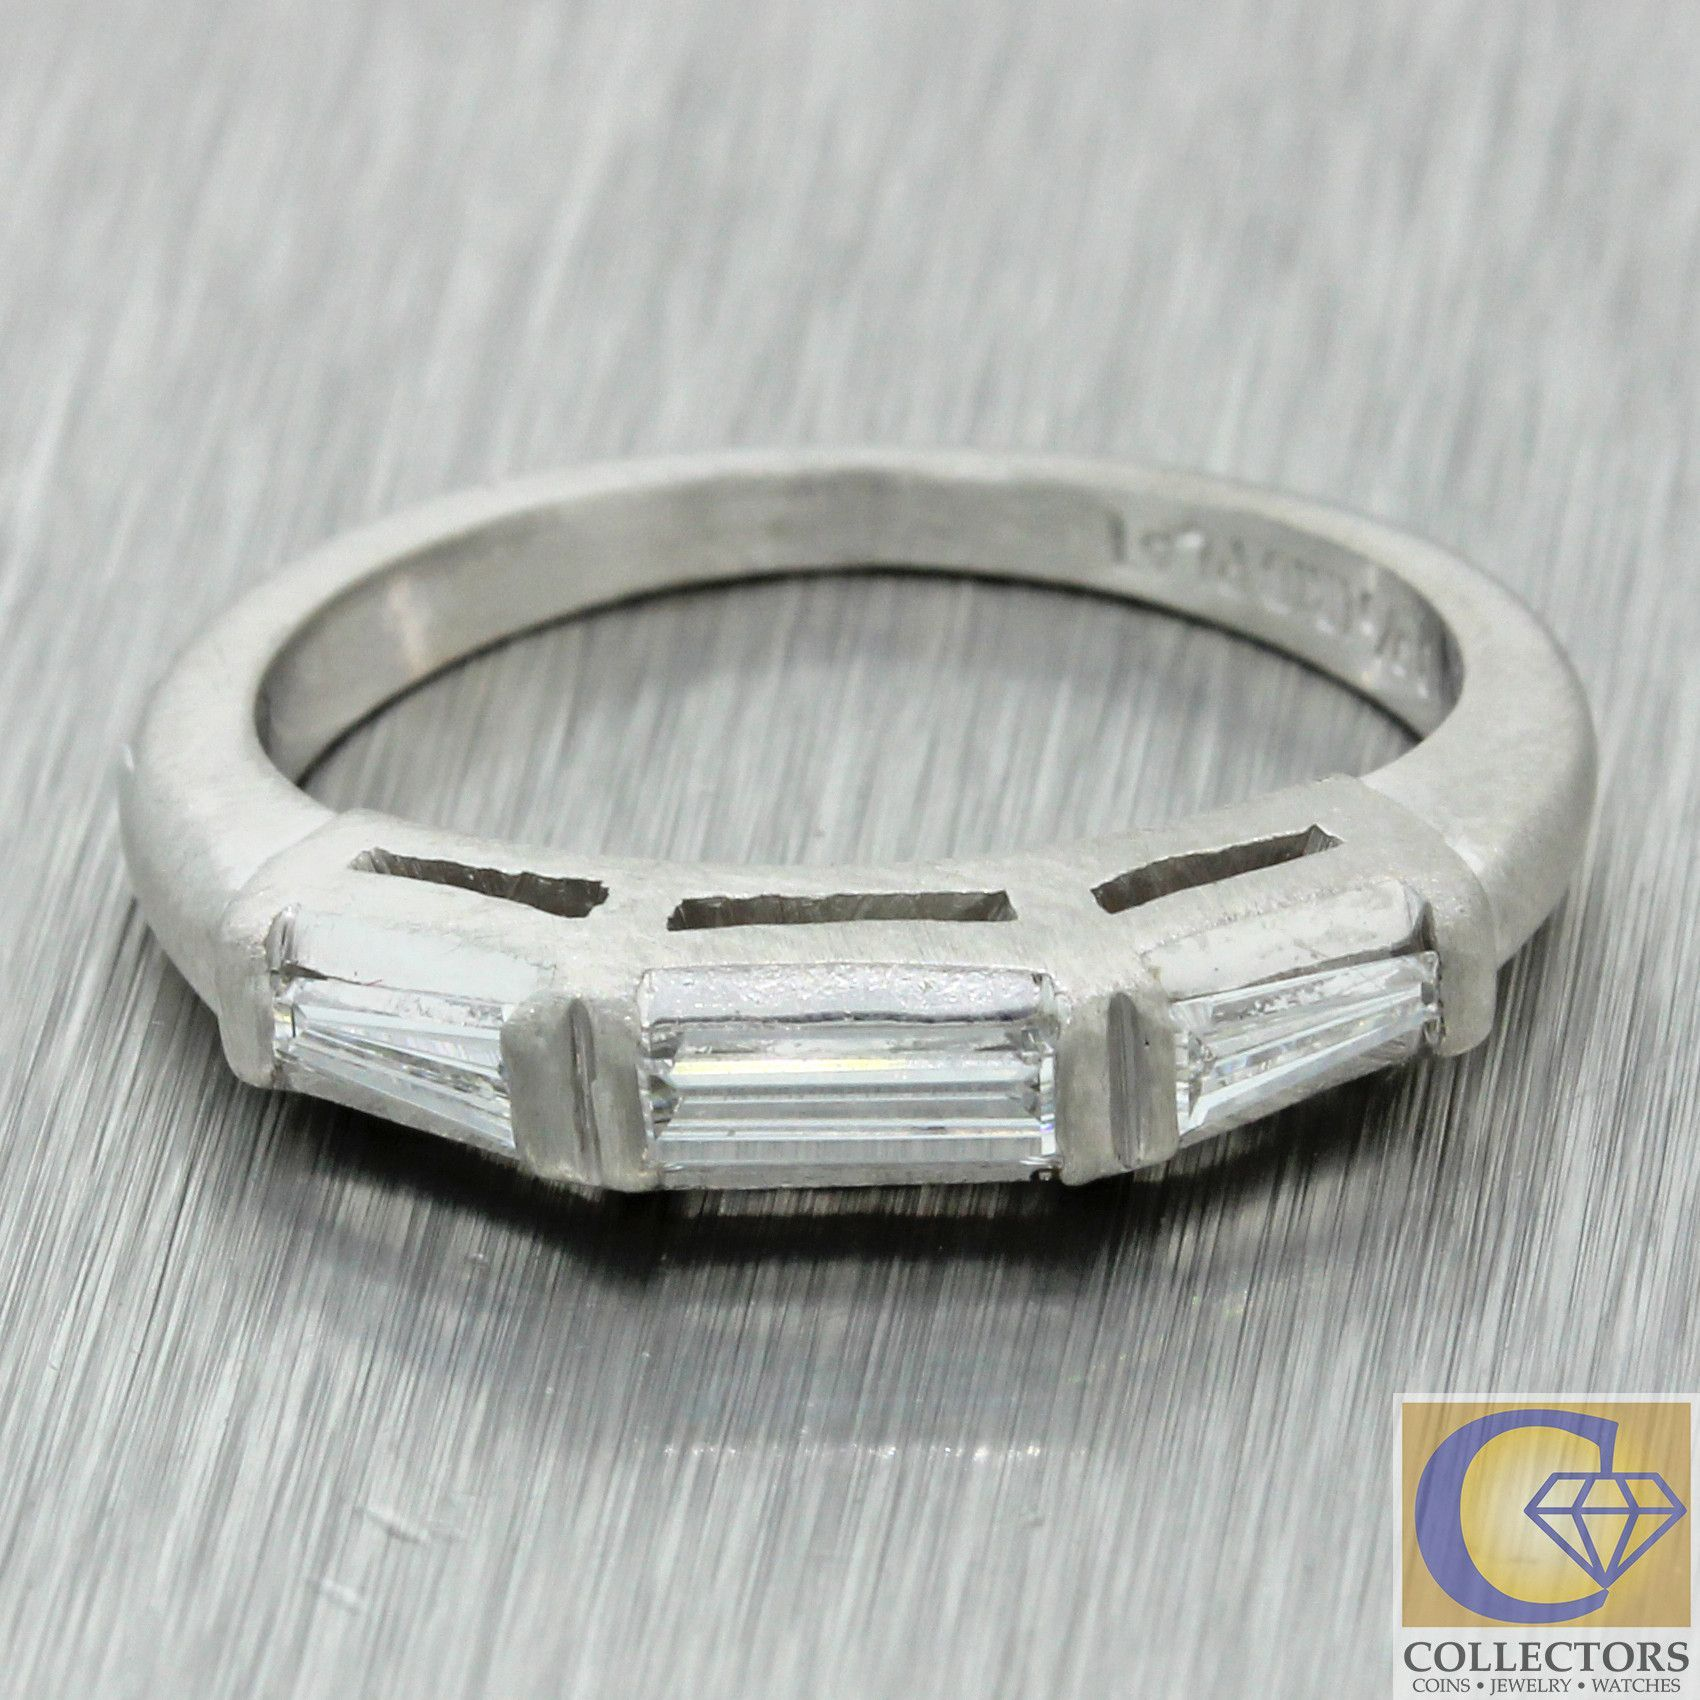 id at tiffany bands platinum sale band wedding sapphire j diamond for baguette z rings co ring and jewelry